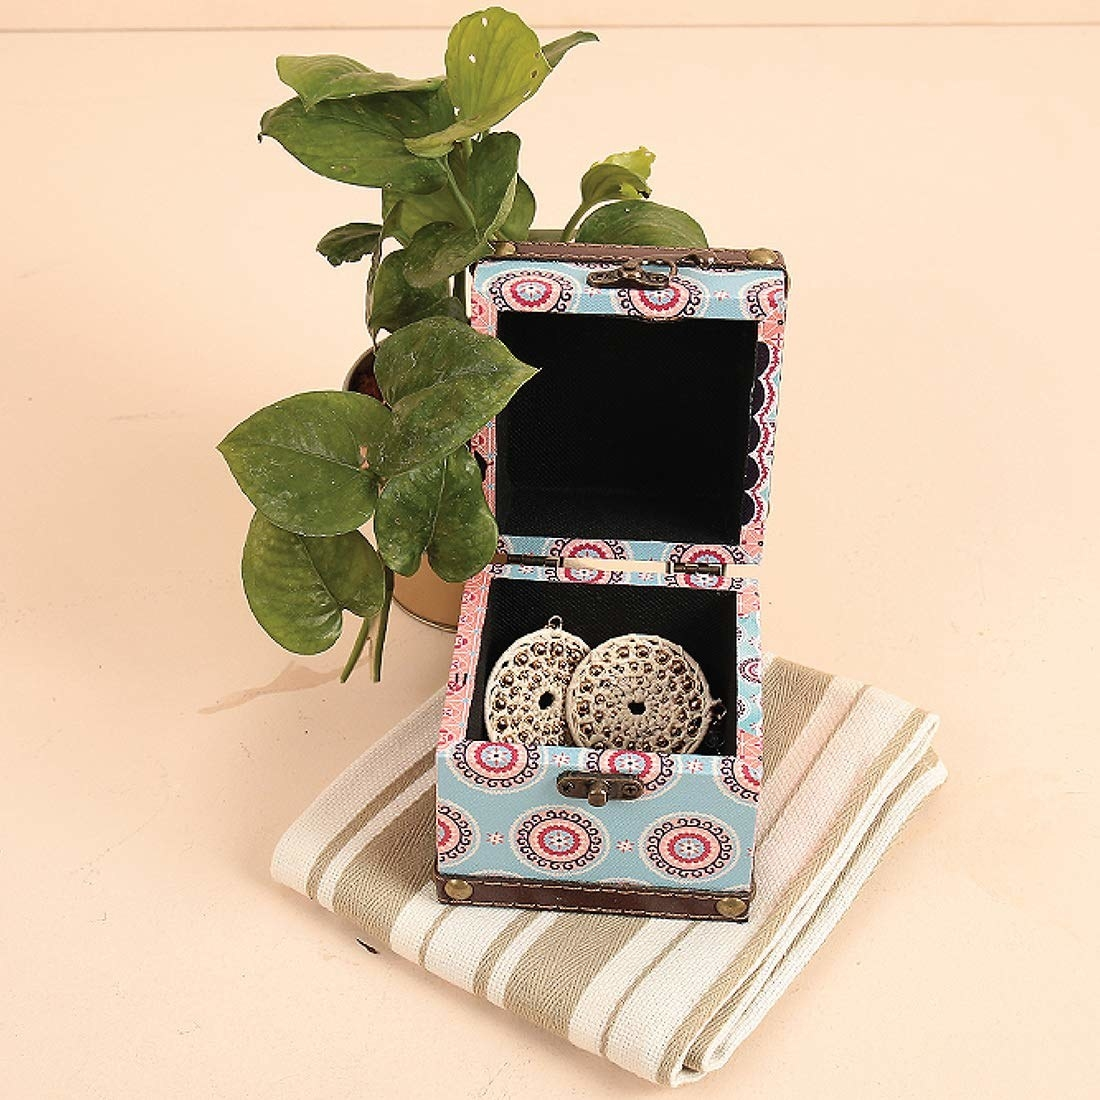 A trinket box with earrings on it next to a plant